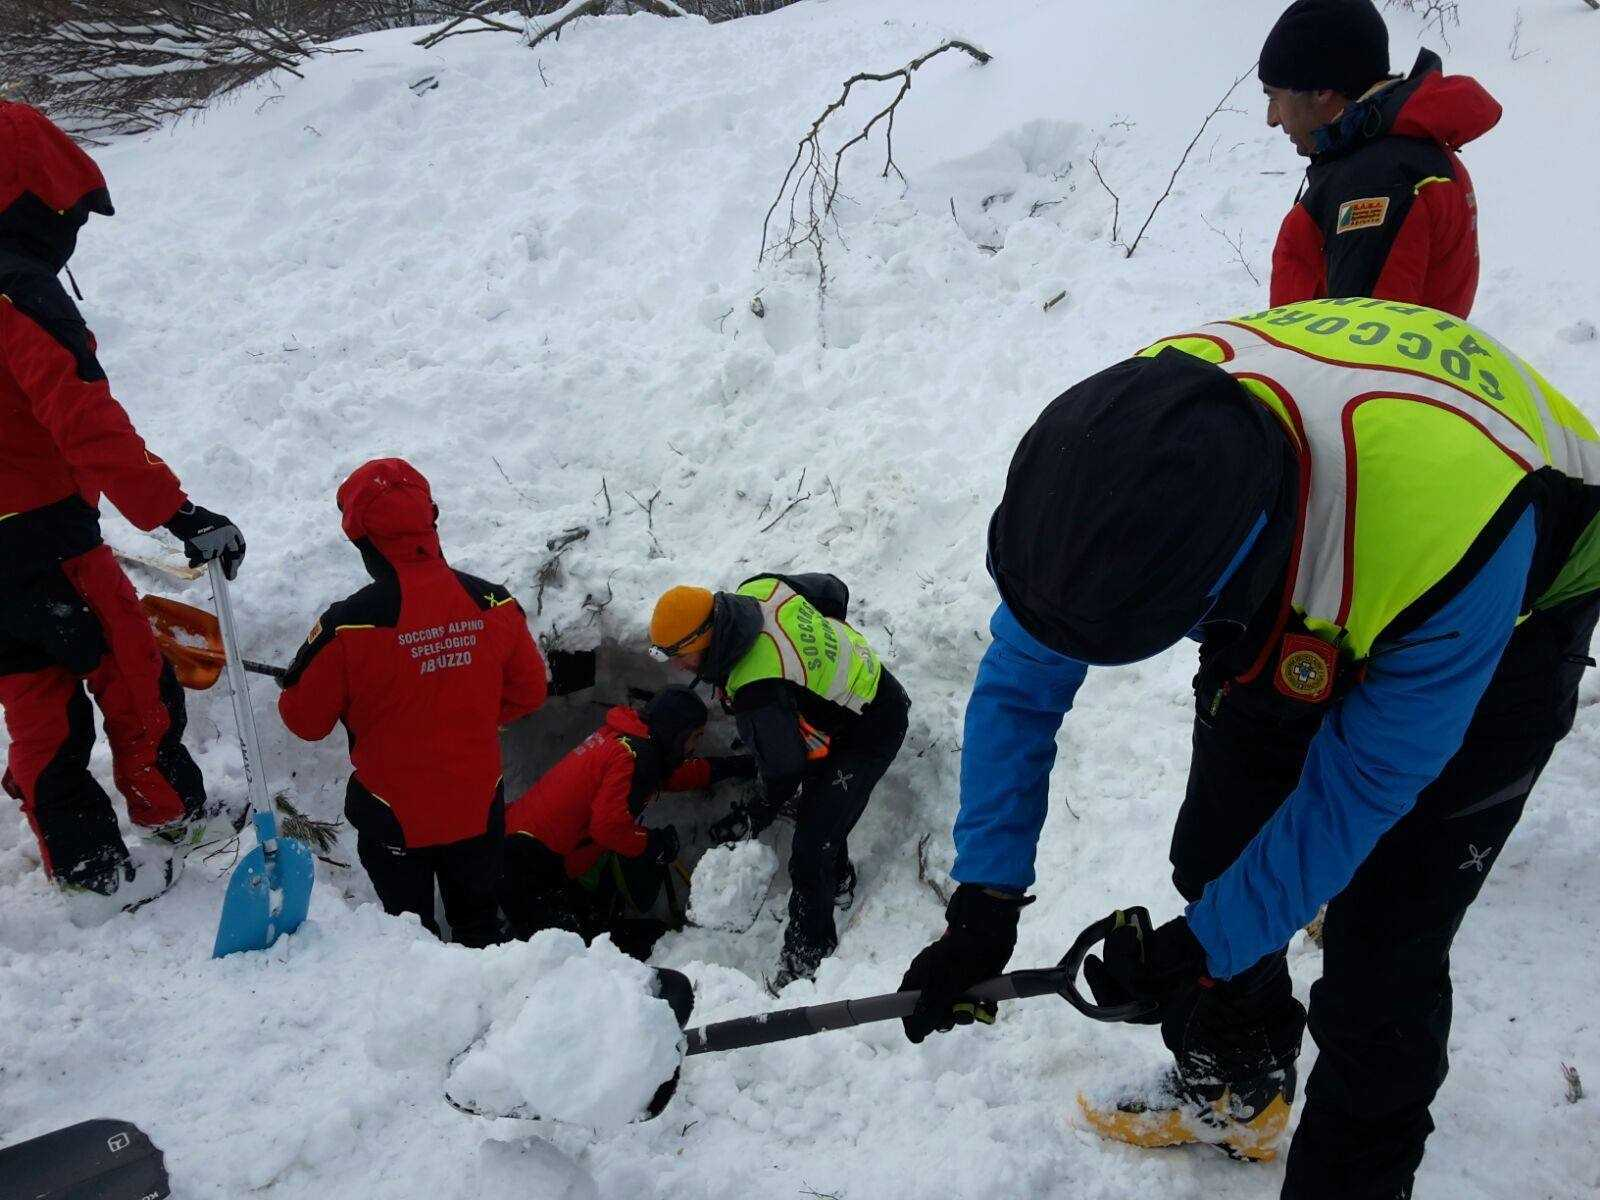 Six survivors found in hotel hit by avalanche in Italy